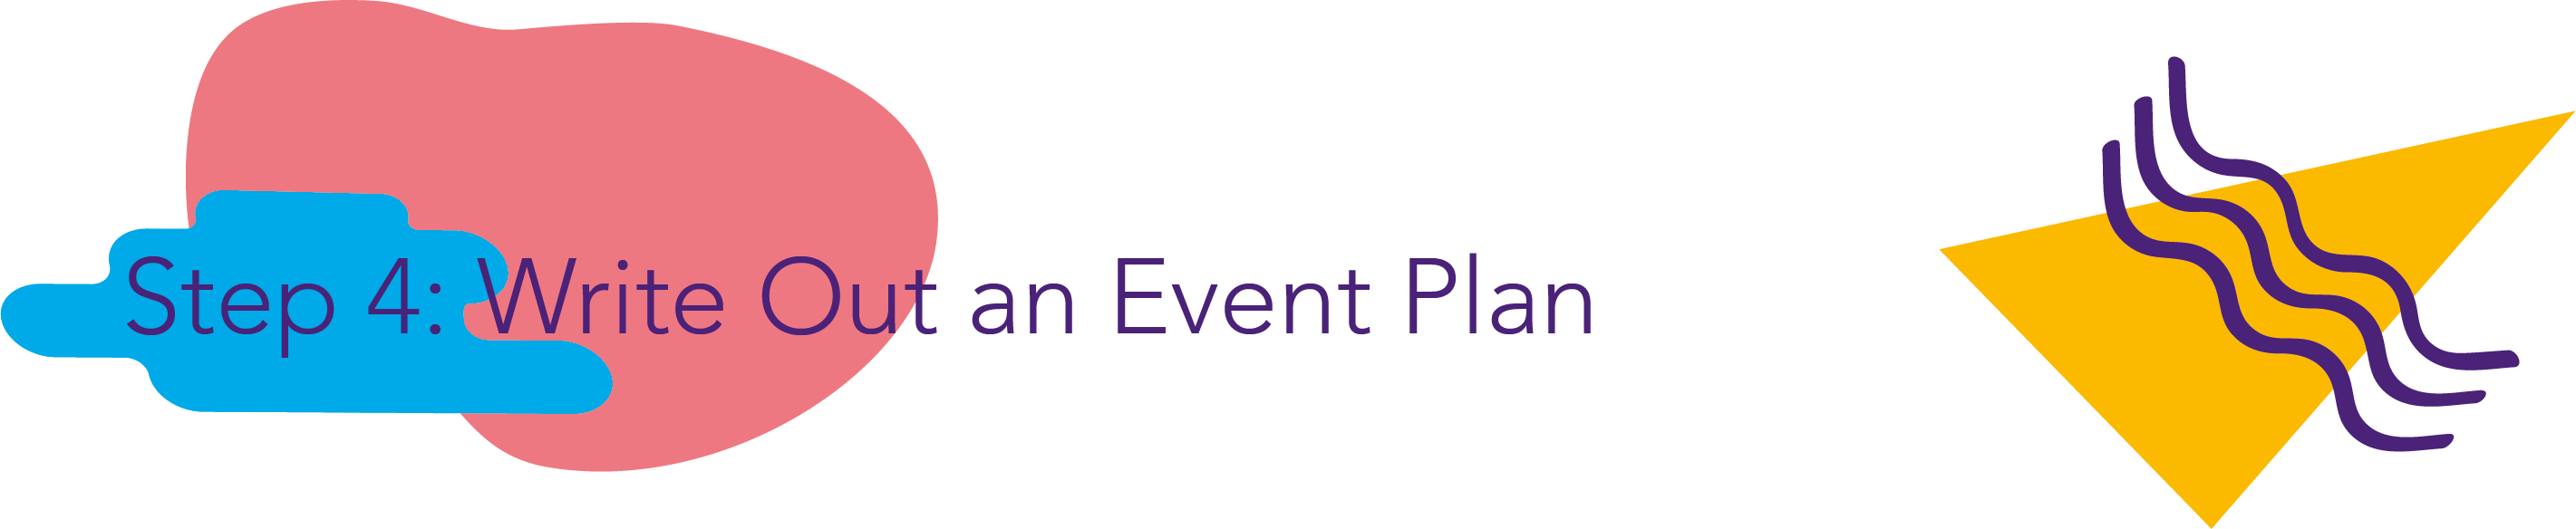 Step 4) Write Out an Event Plan